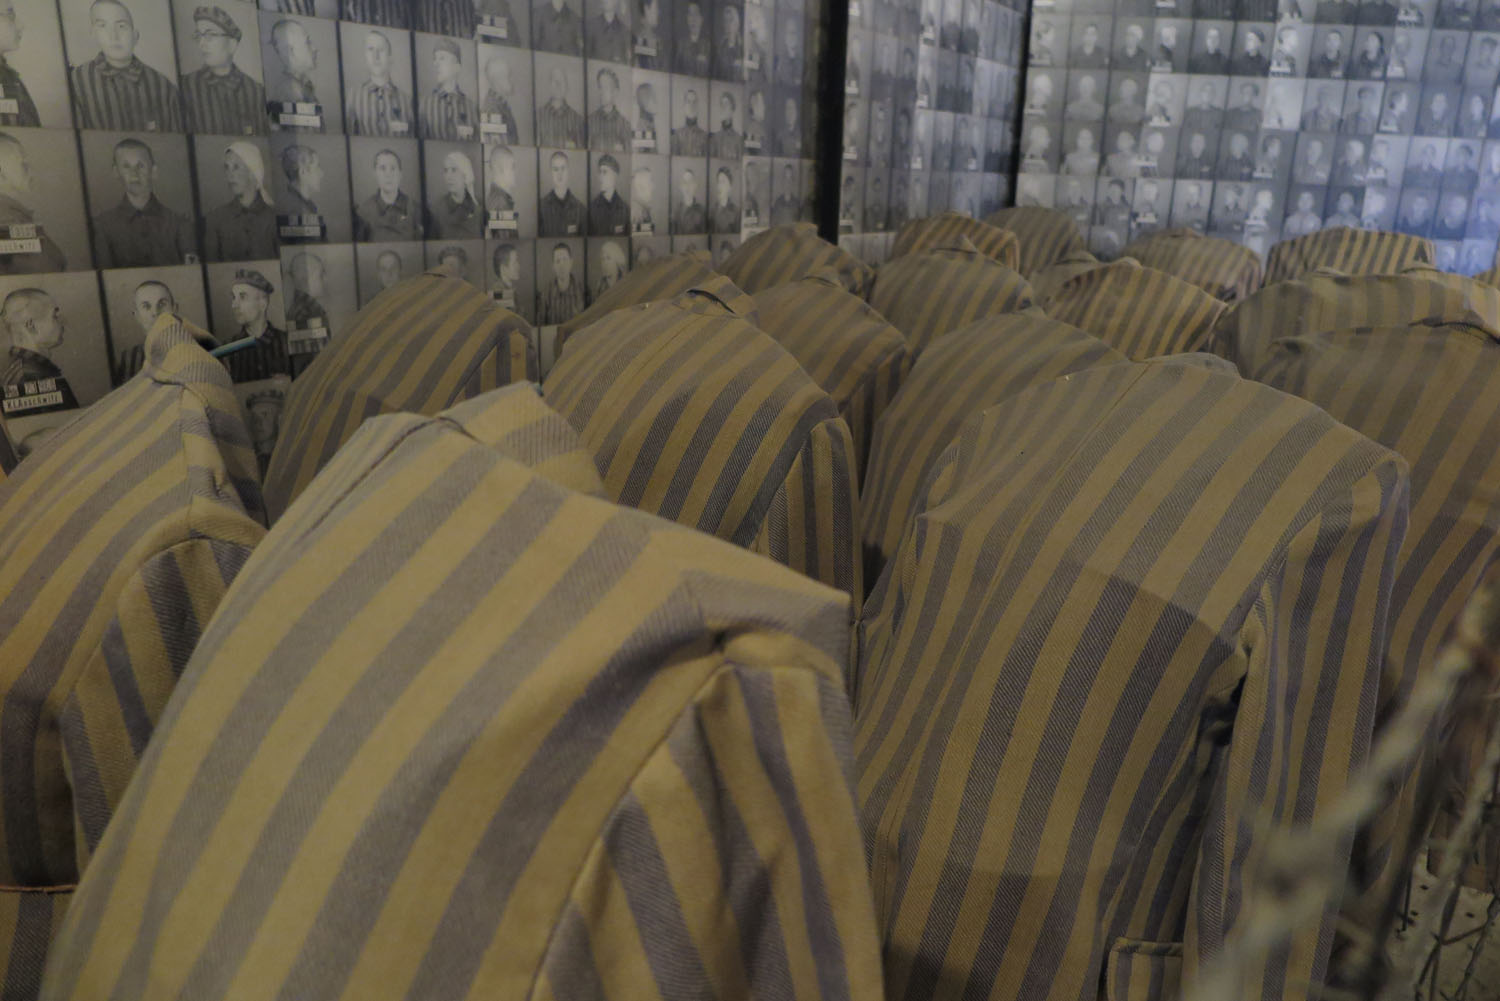 Poland-Auschwitz-Uniforms